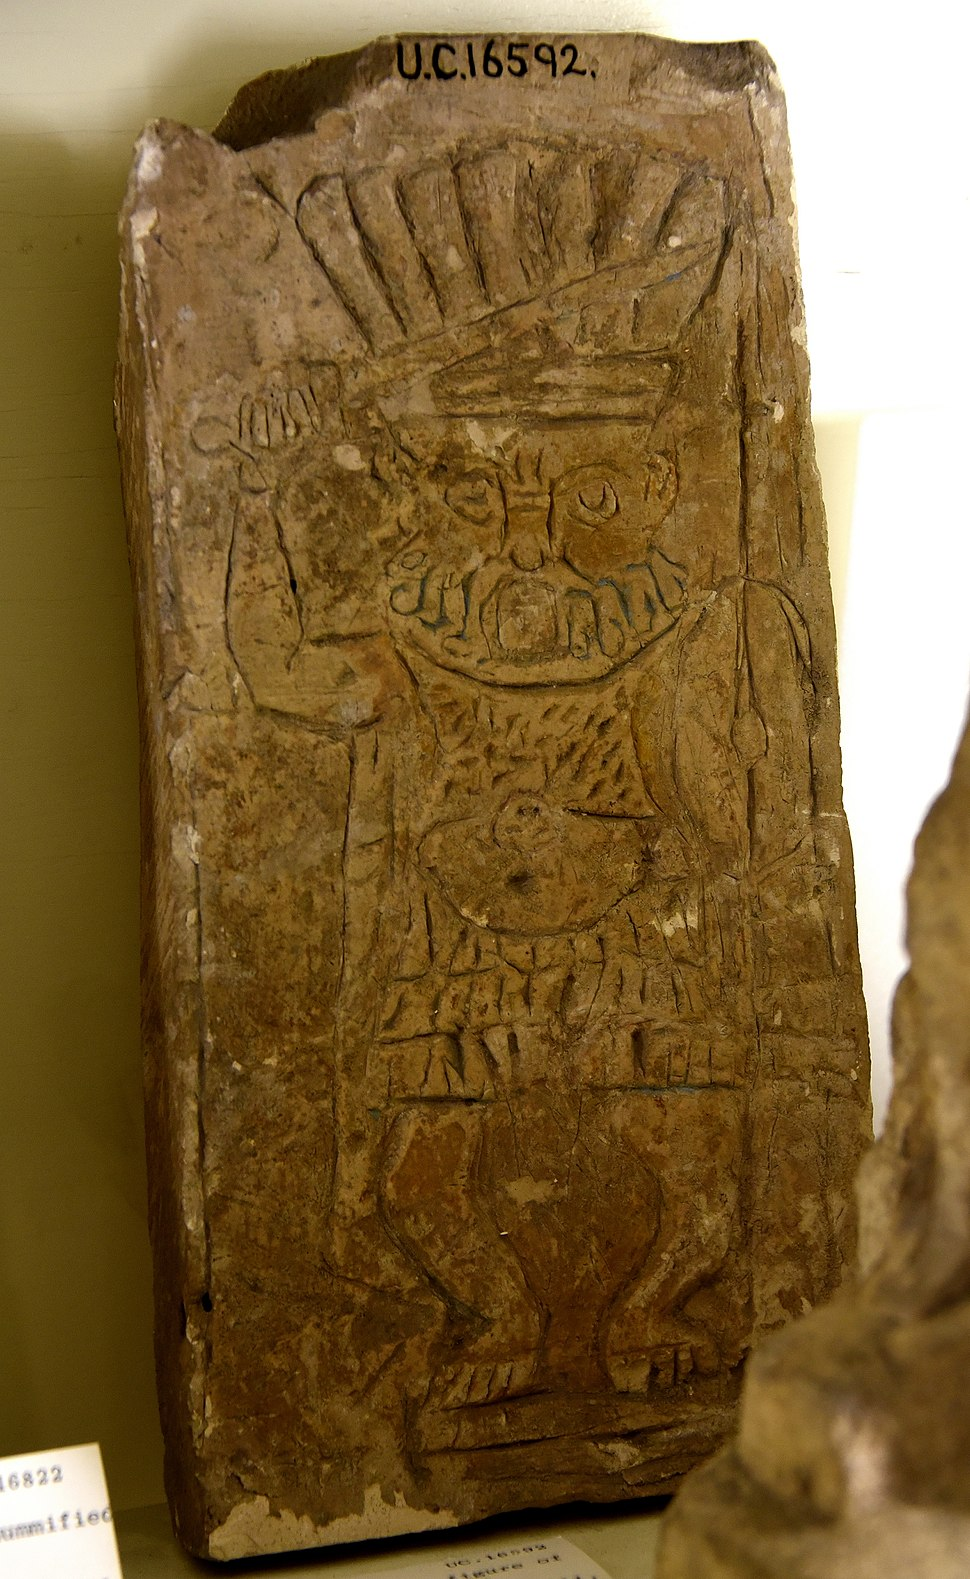 God Bes as a Roman soldier. Sword in right hand and spear and shield in left hand. Limestone slab, in relief. Roman Period. From Egypt. The Petrie Museum of Egyptian Archaeology, London